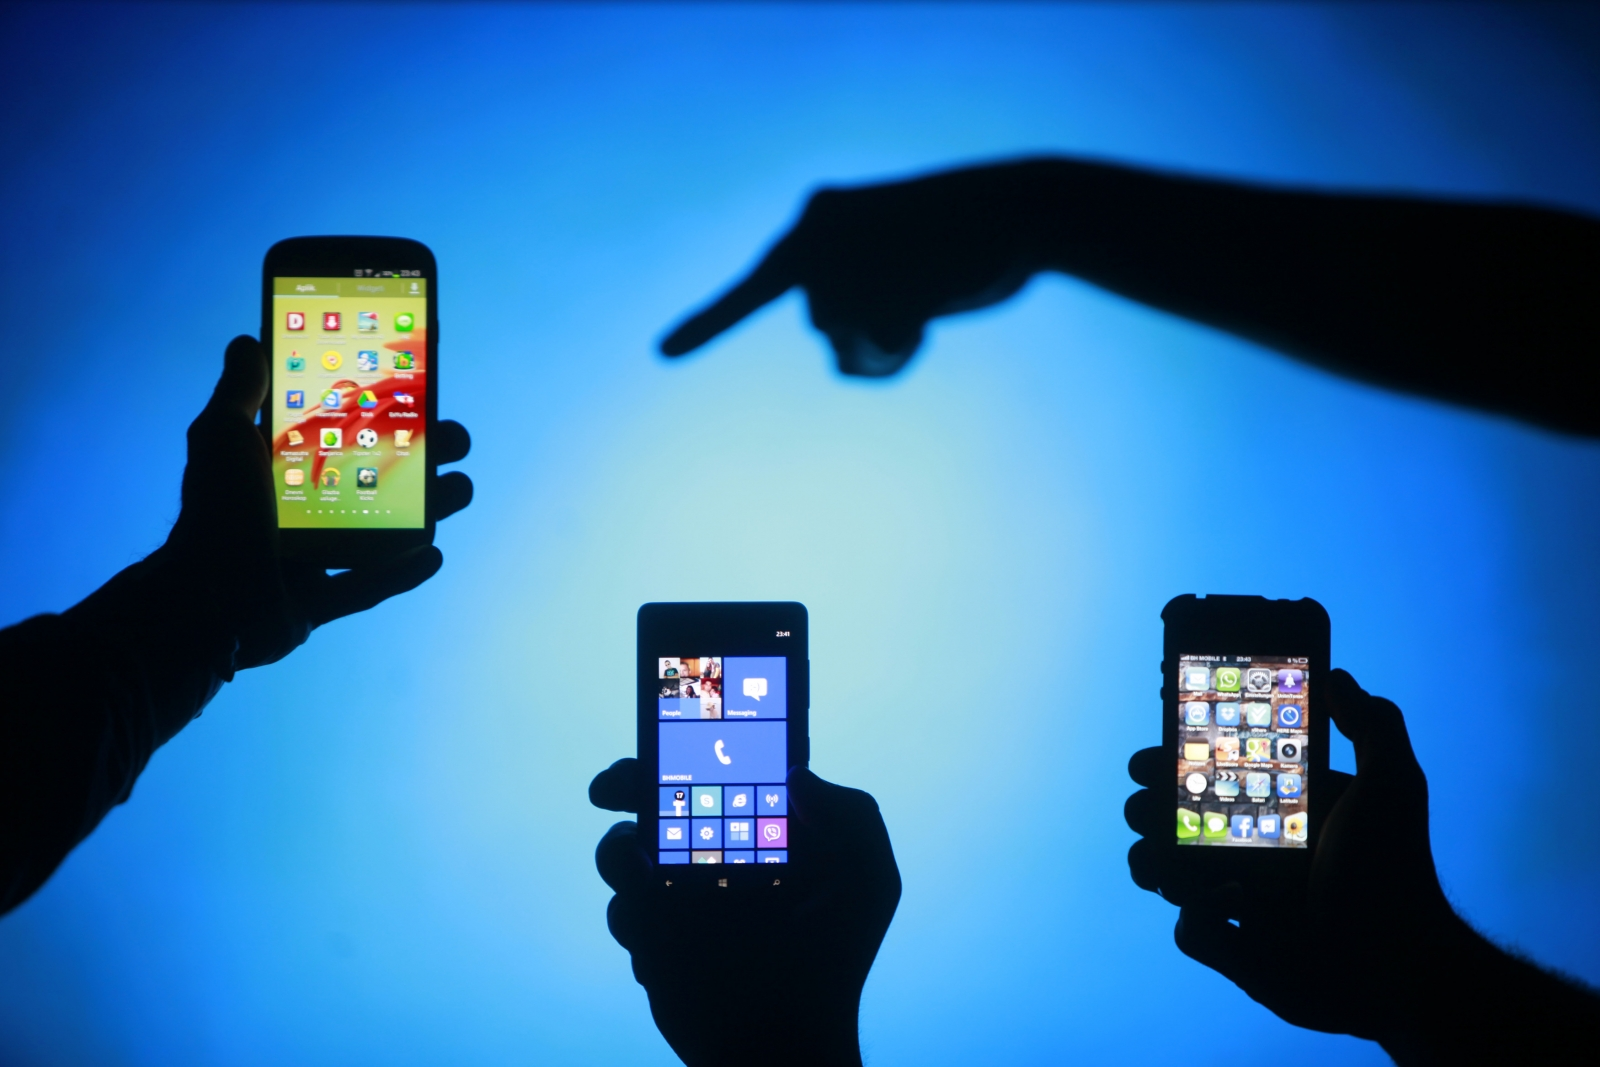 Digital Detox: Cashing in on our smartphone addiction